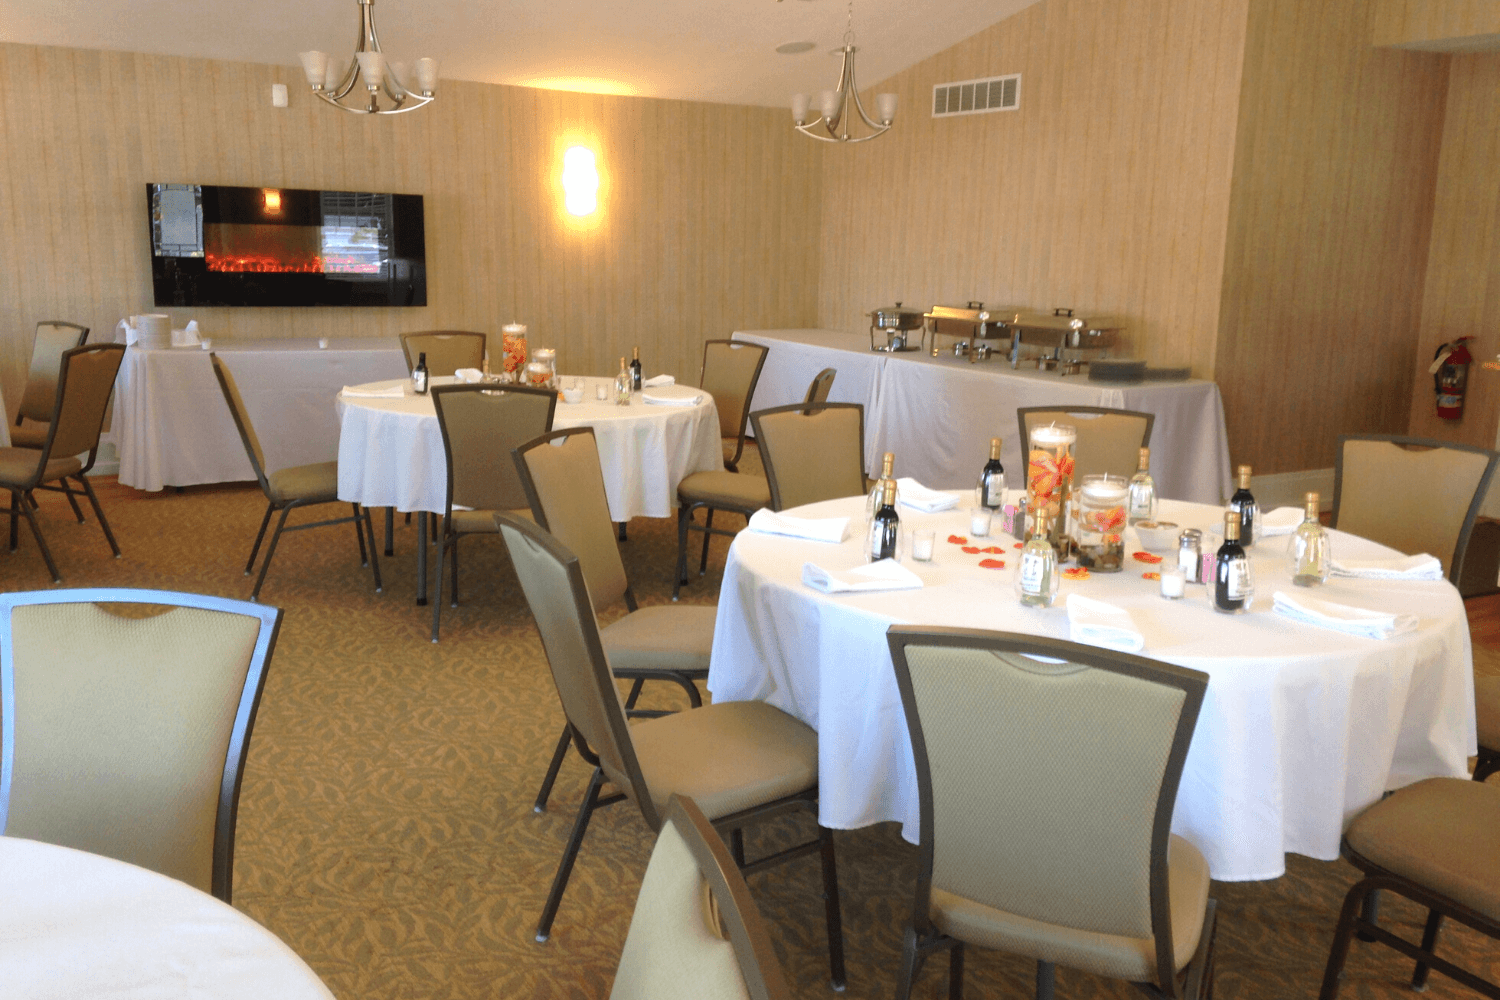 Event Space for Dining